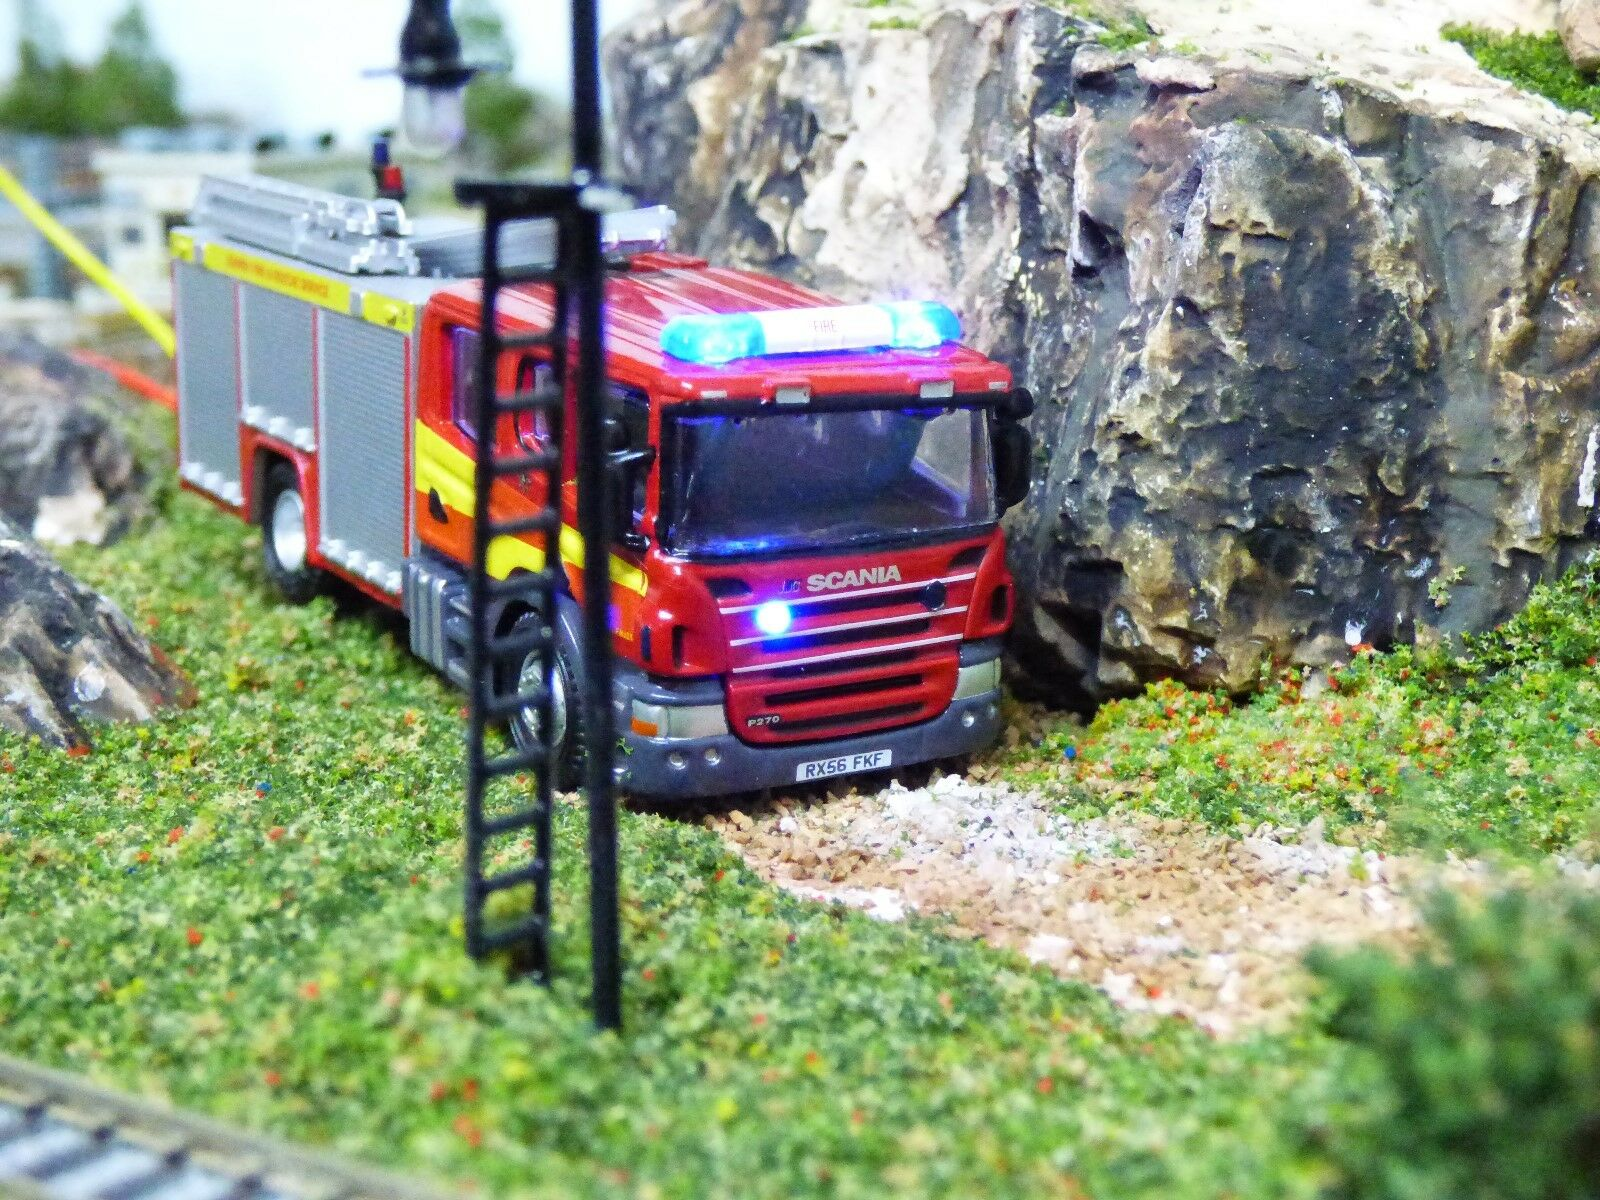 Oxford 1 76 OO Scania Fire Engine with flashing lights